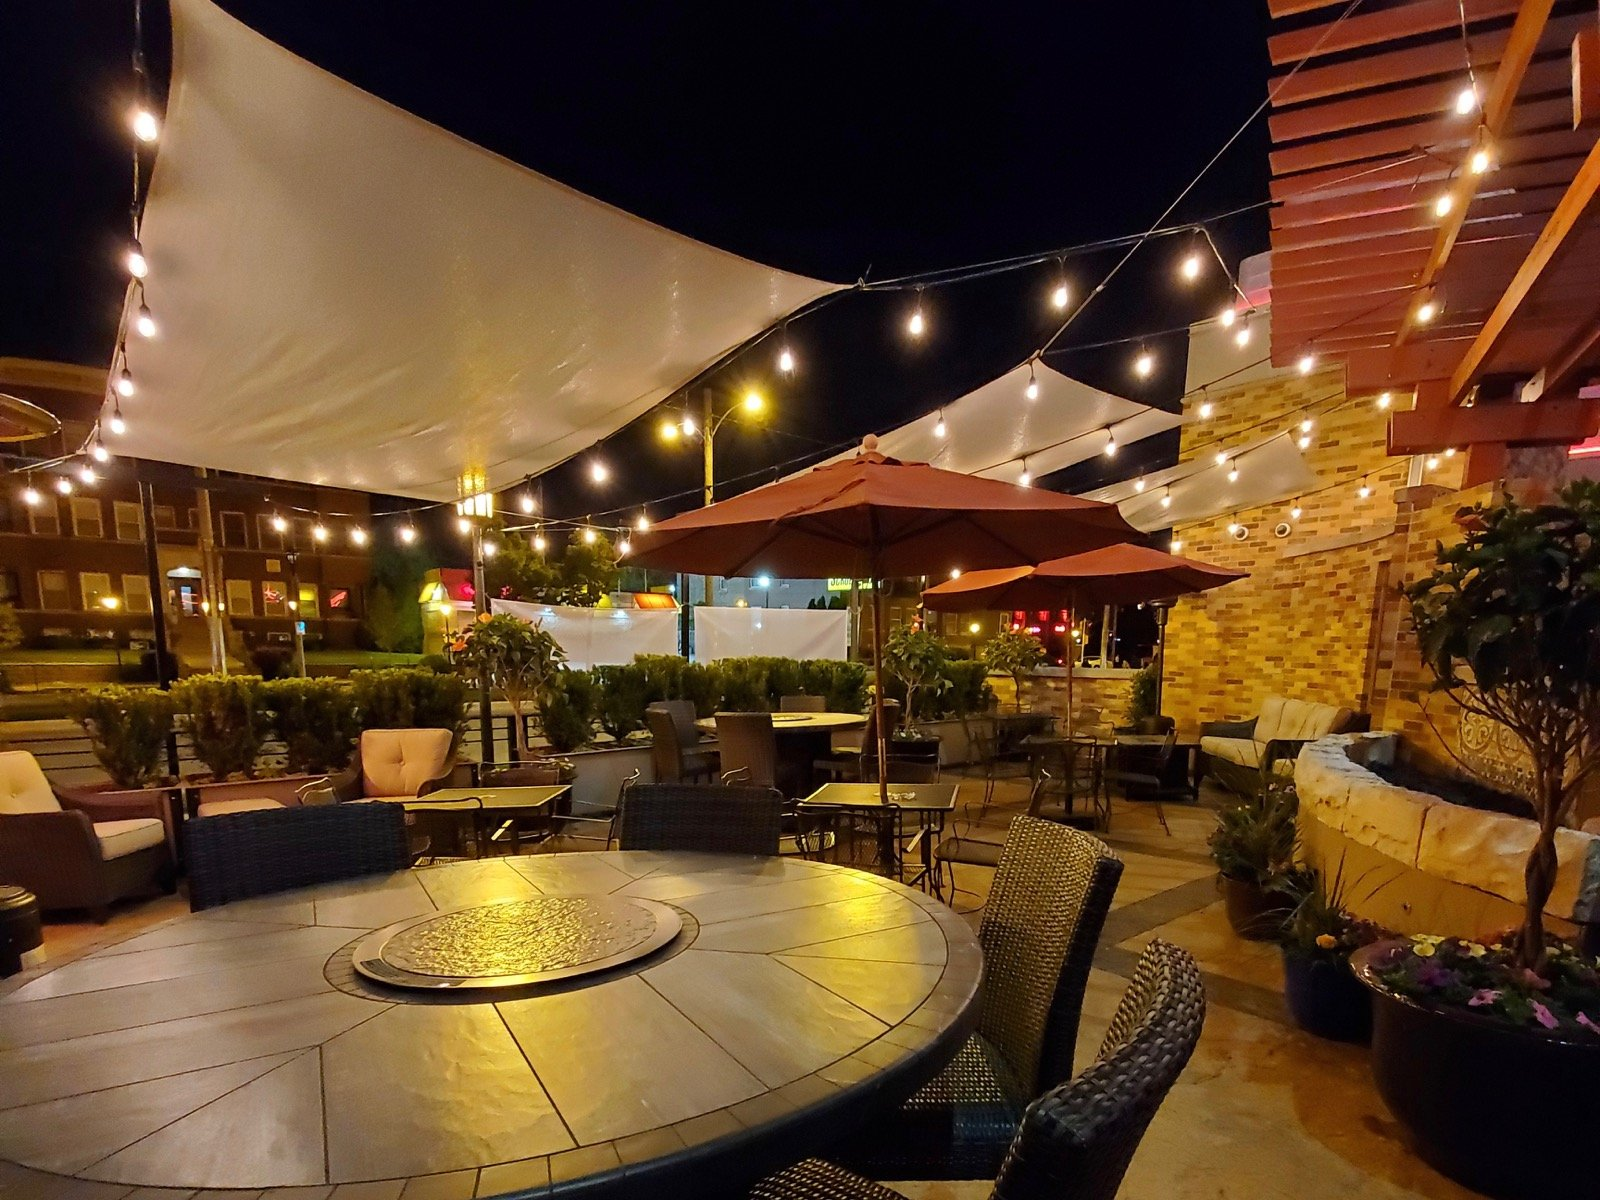 The Ambassador Hotel unveils snazzy new patio for summer